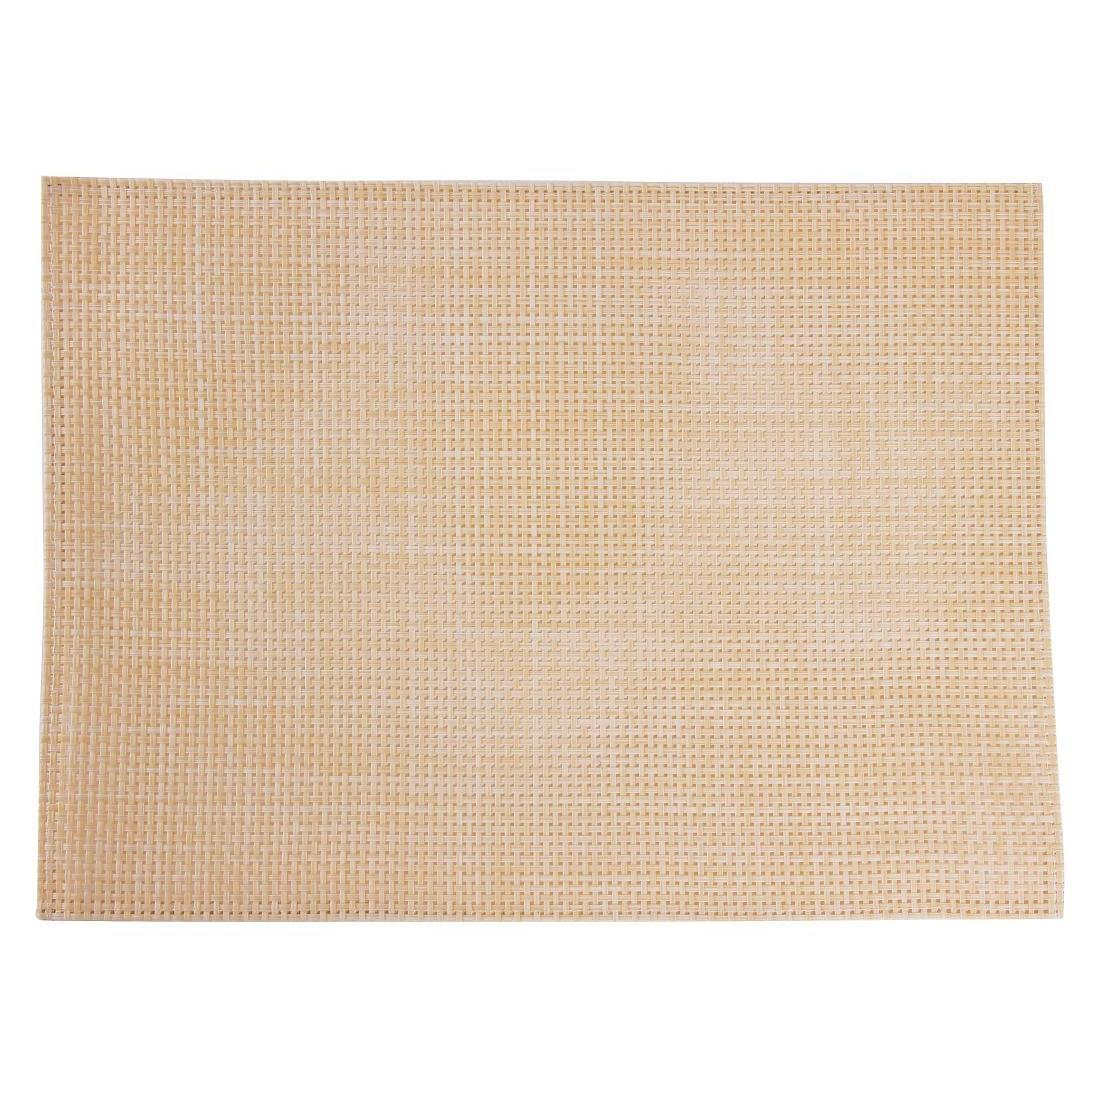 APS PVC Placemat Beige - Case 6 - GJ994